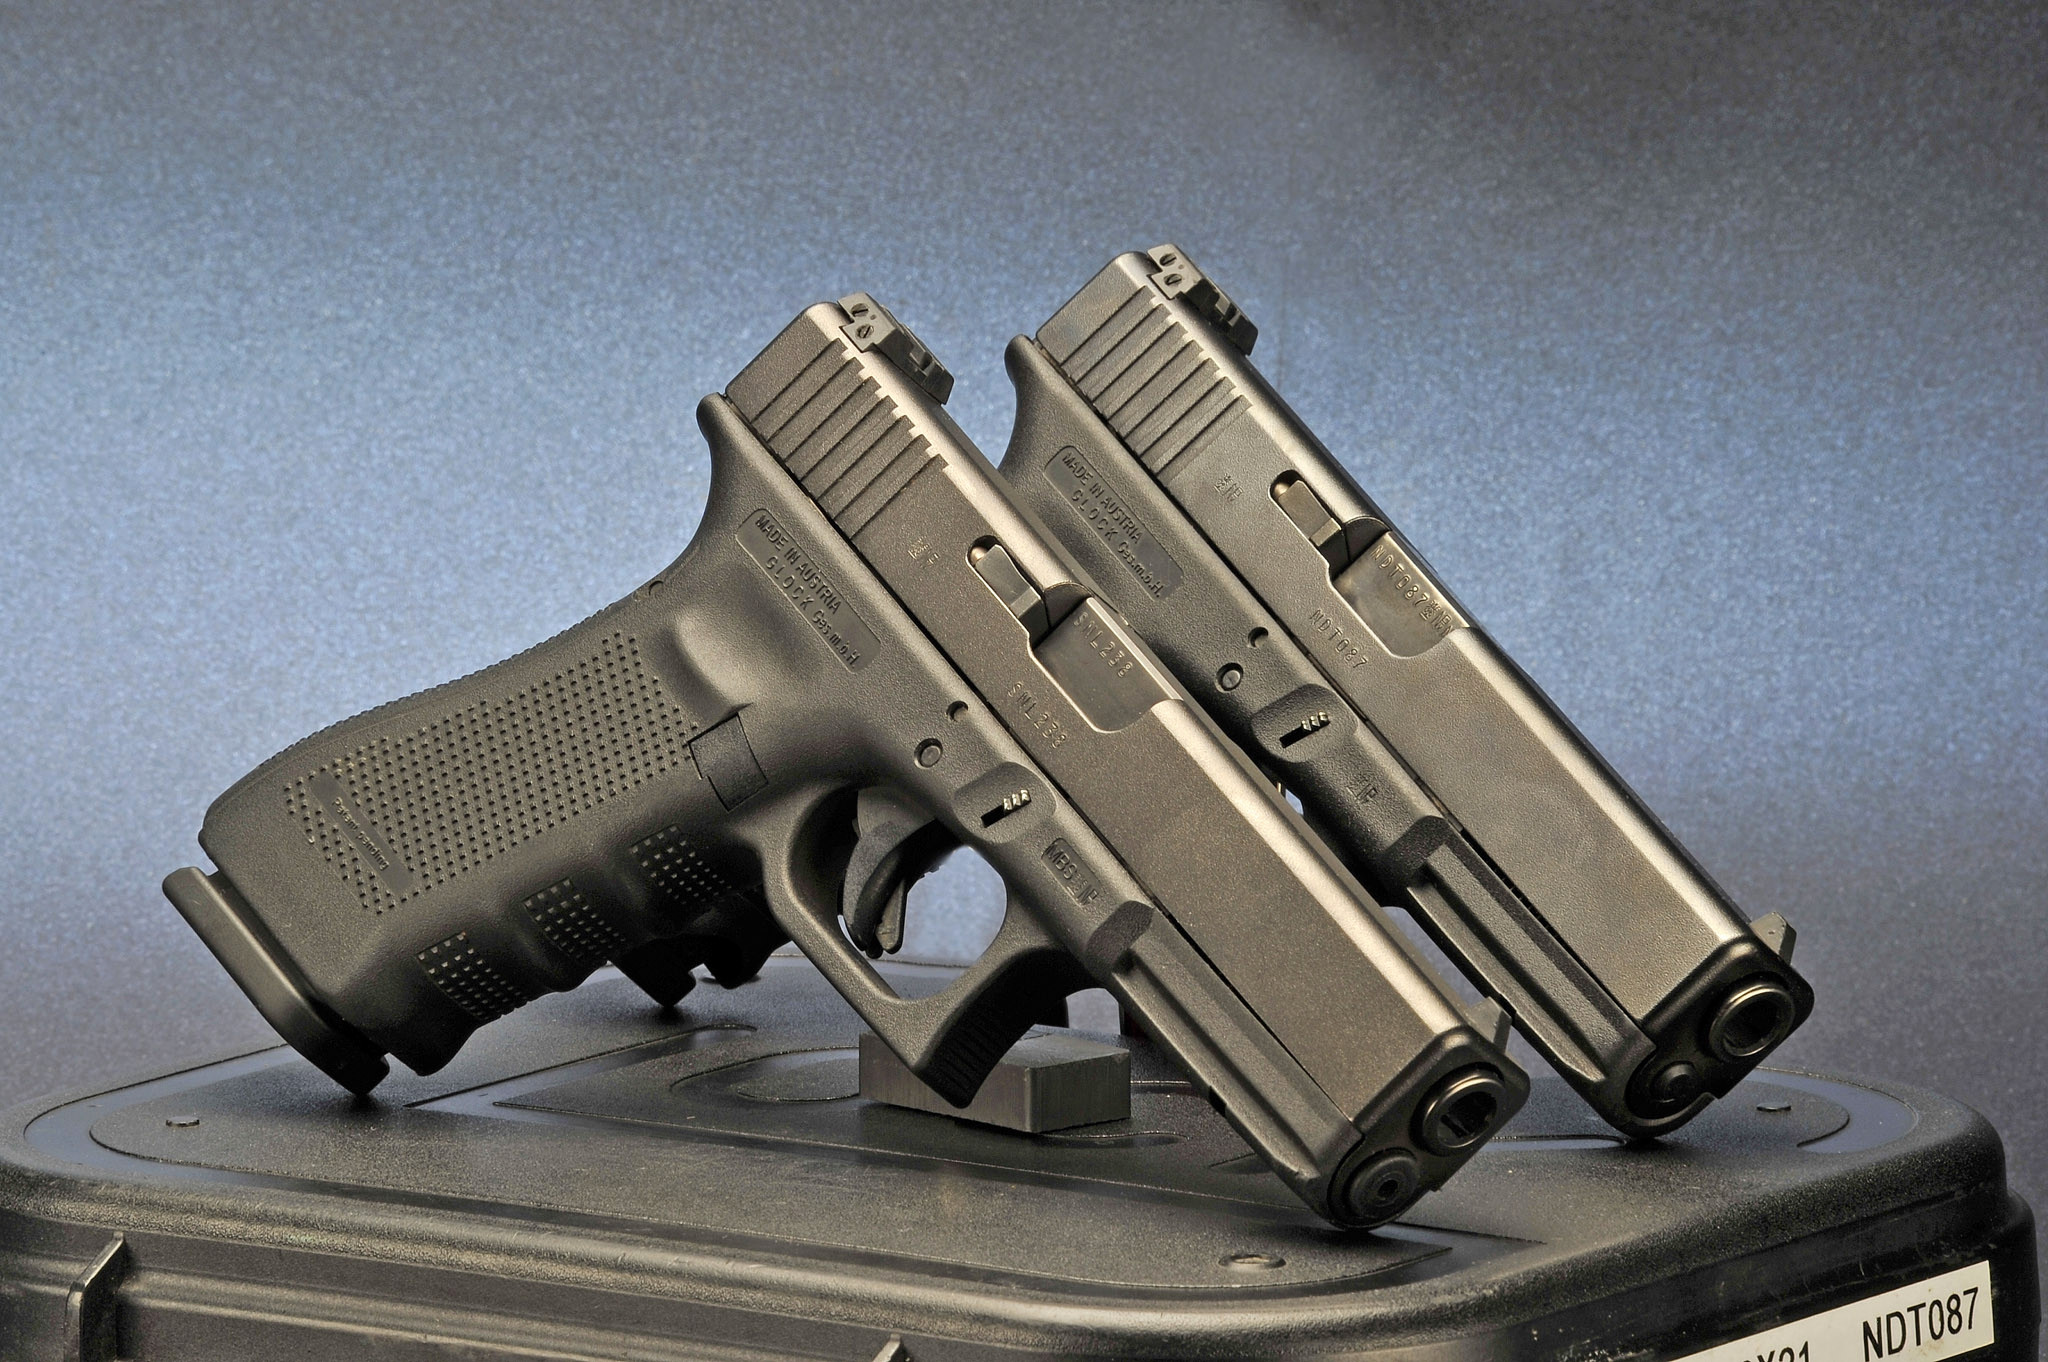 Res: 2048x1362, Glock Wallpaper Luxury Glock 17 Gen 4 Wallpapers S Backgrounds